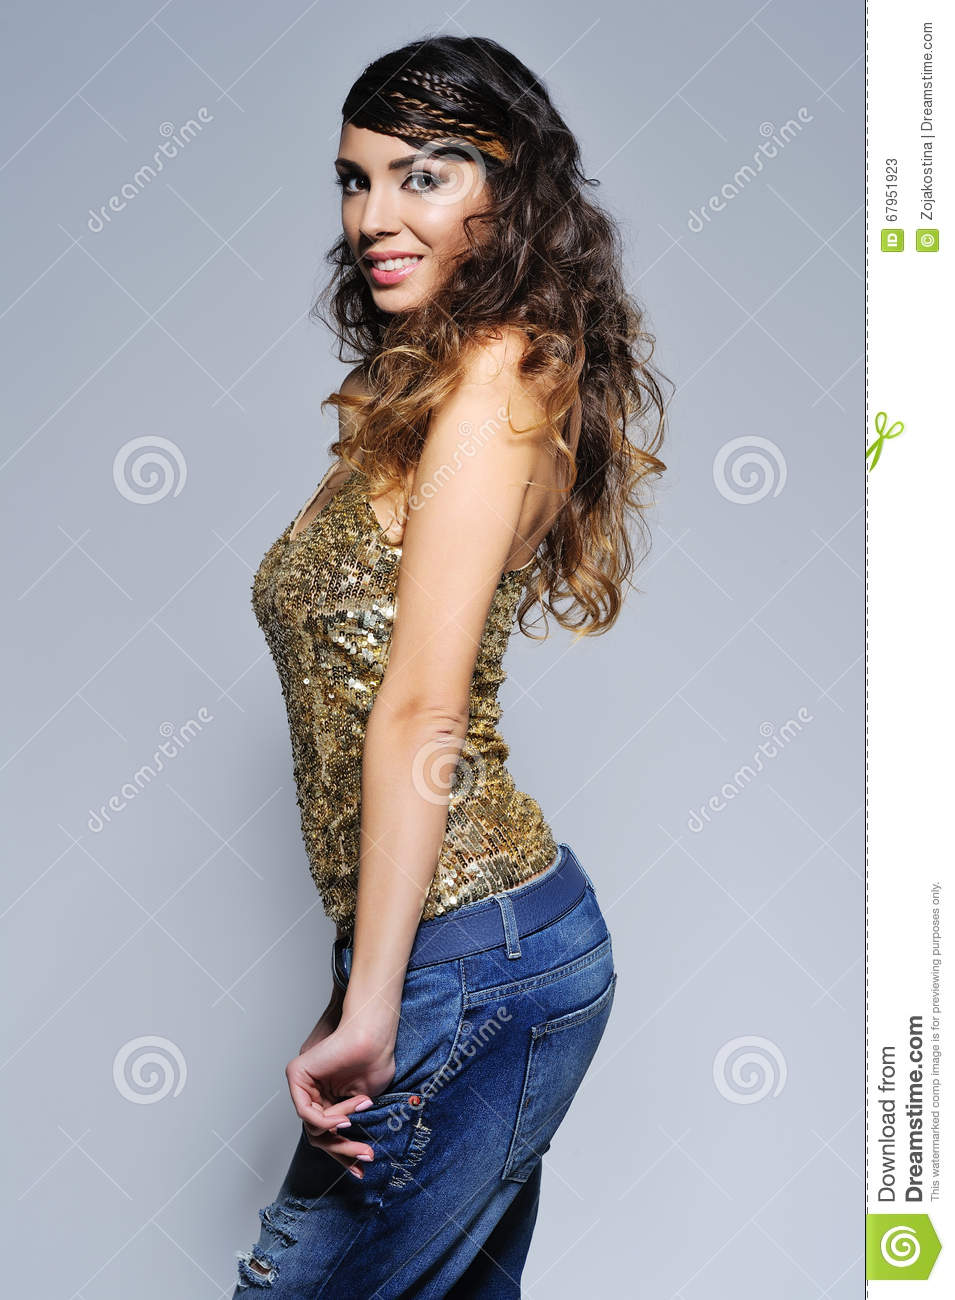 beautiful woman in sparkling top stock image - image of portrait